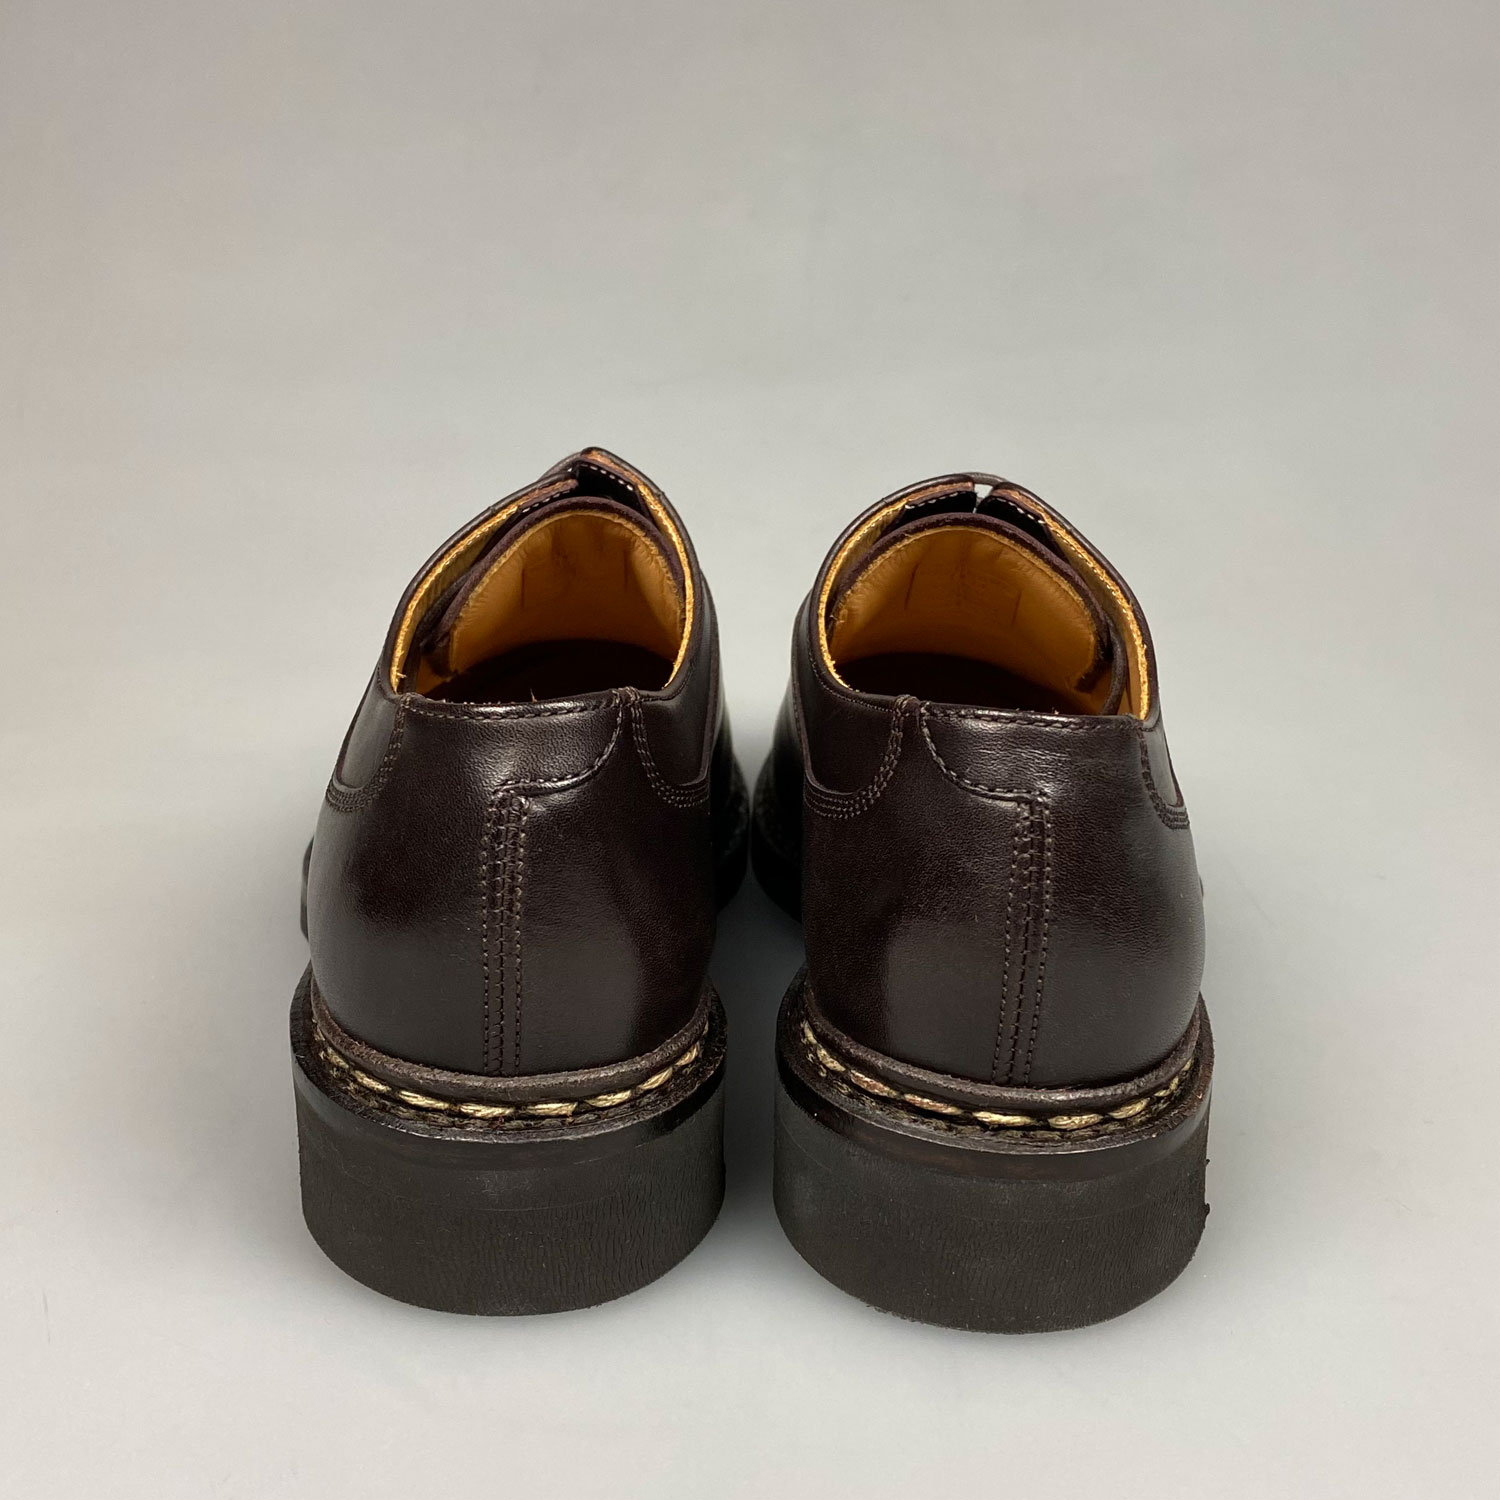 Stones And Dents In Leather Sole Shoes